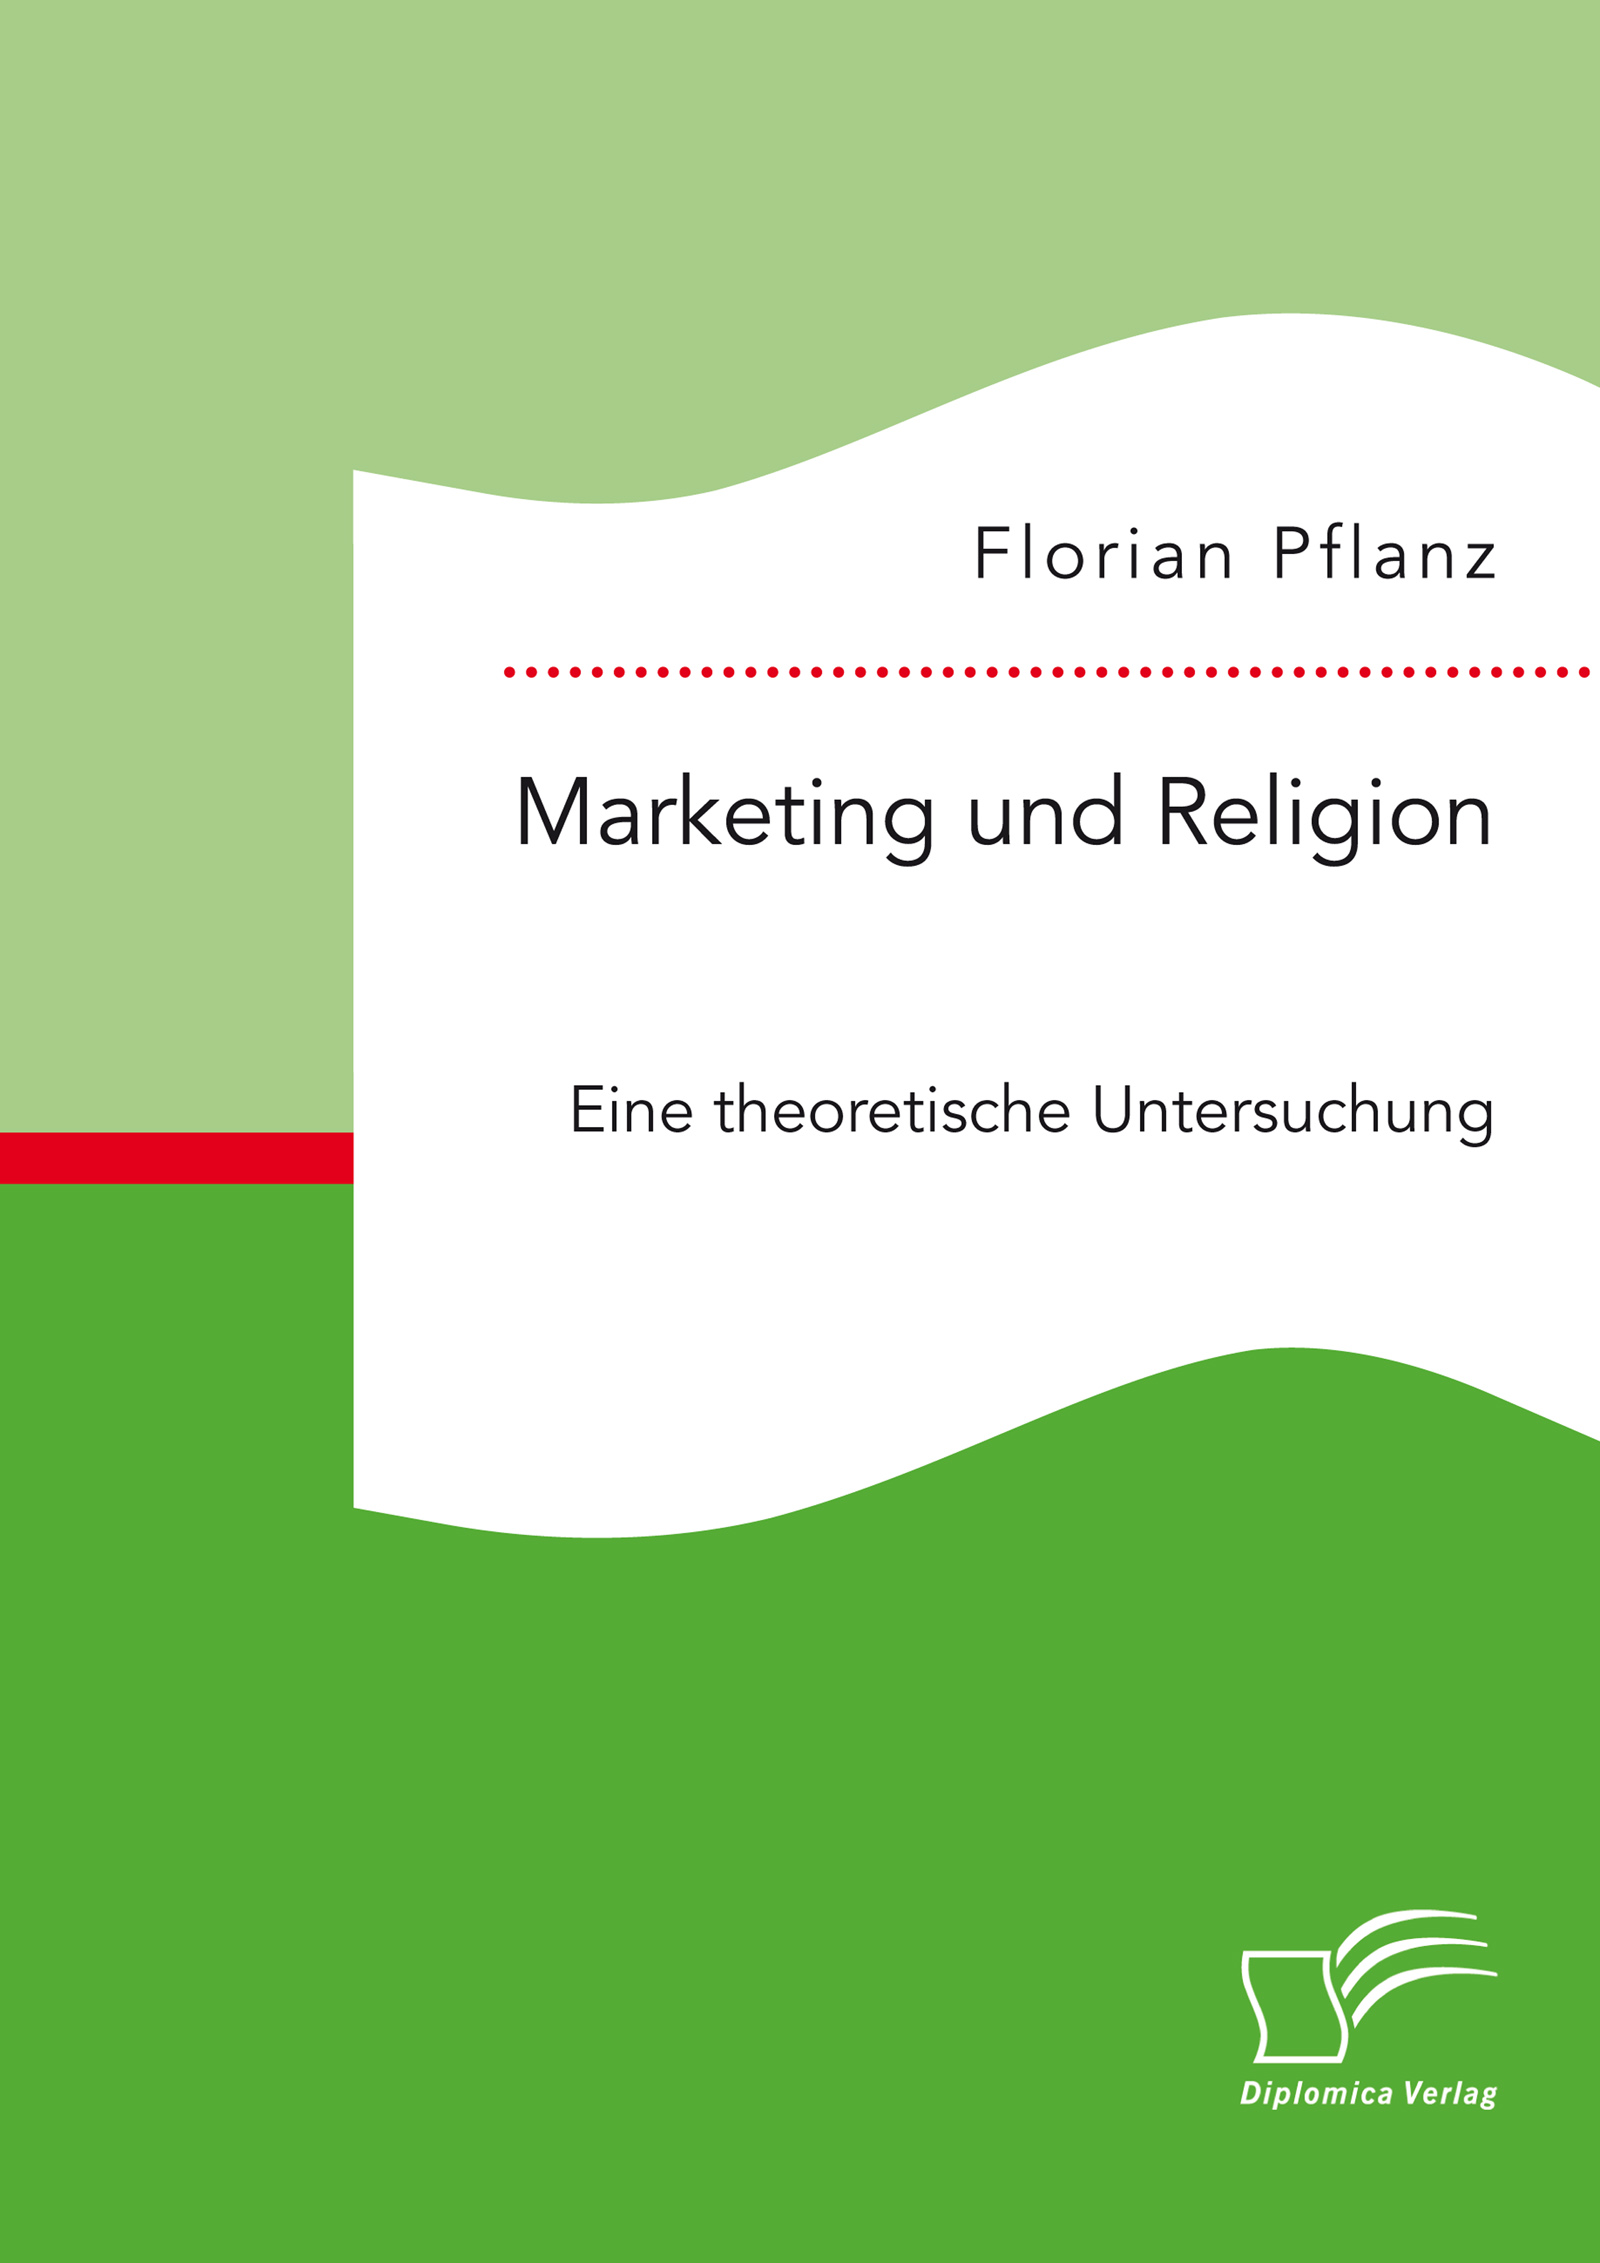 religion and marketing About the discipline understanding religious and cultural traditions can make or break an advertising campaign knowing how to appeal to an individual or community's sense of tradition, symbolism and beliefs about how the world functions creates effective advertising and marketing.